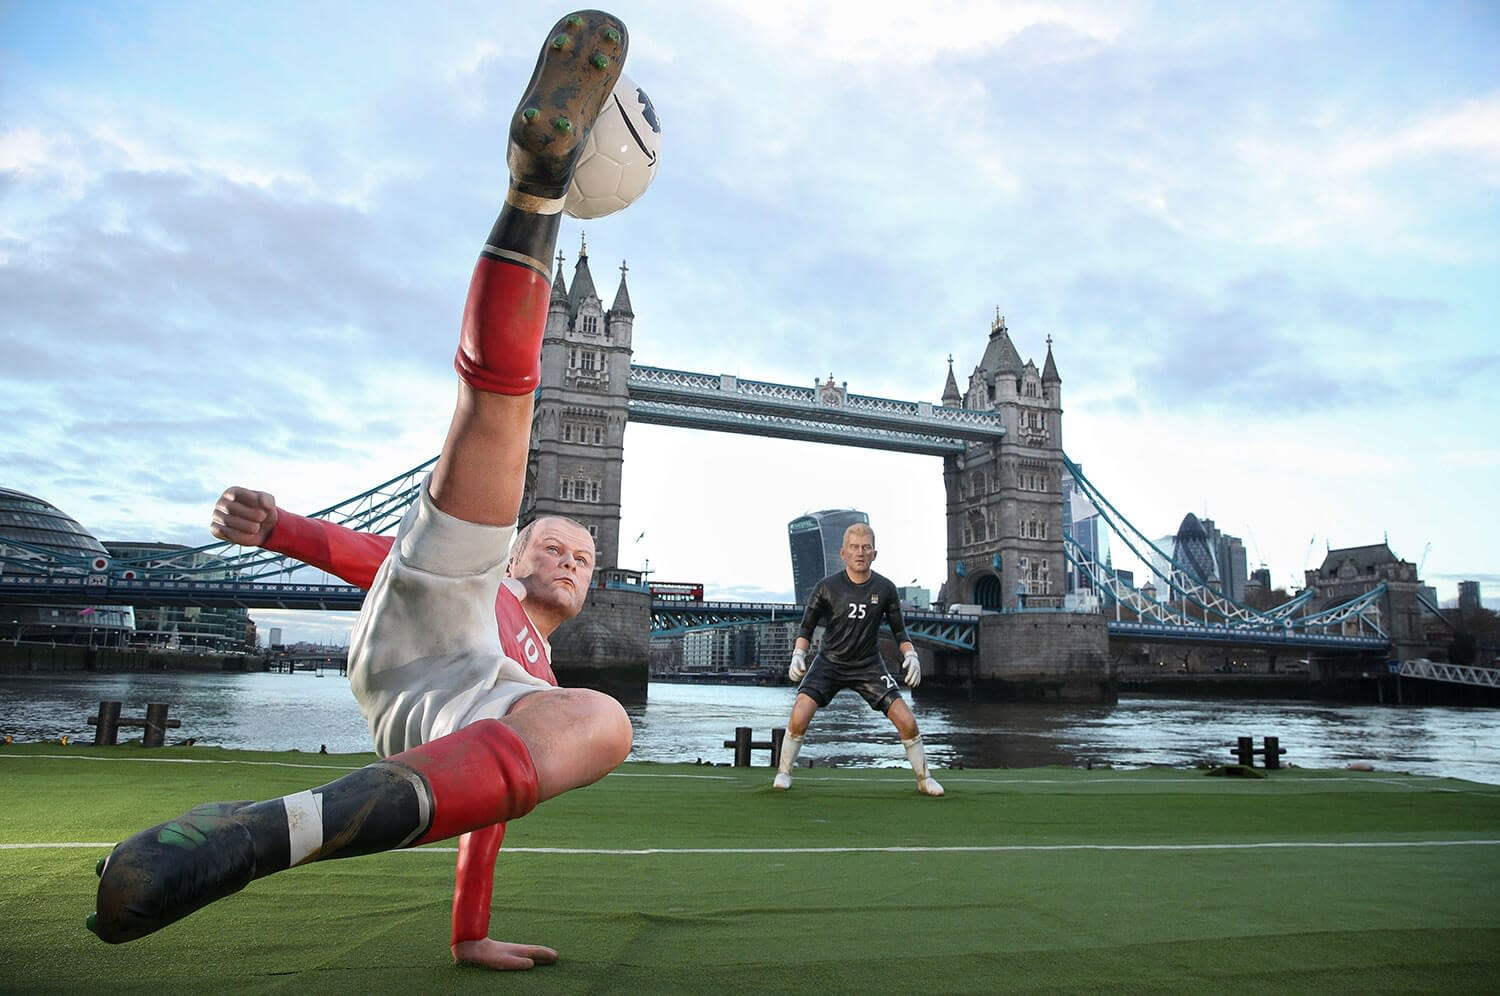 amazon prime premier league launch tower bridge wayne rooney bicycle kick